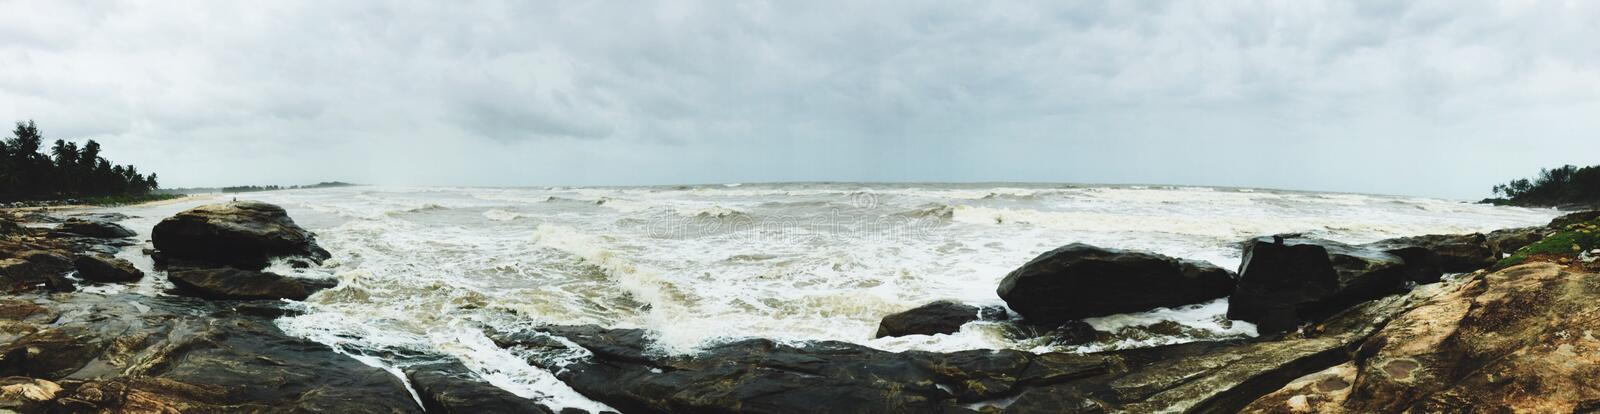 Panoramic view of the rocky beaches of Kundapura. Rocky beaches and the violent sea waves at Kundapura royalty free stock photos